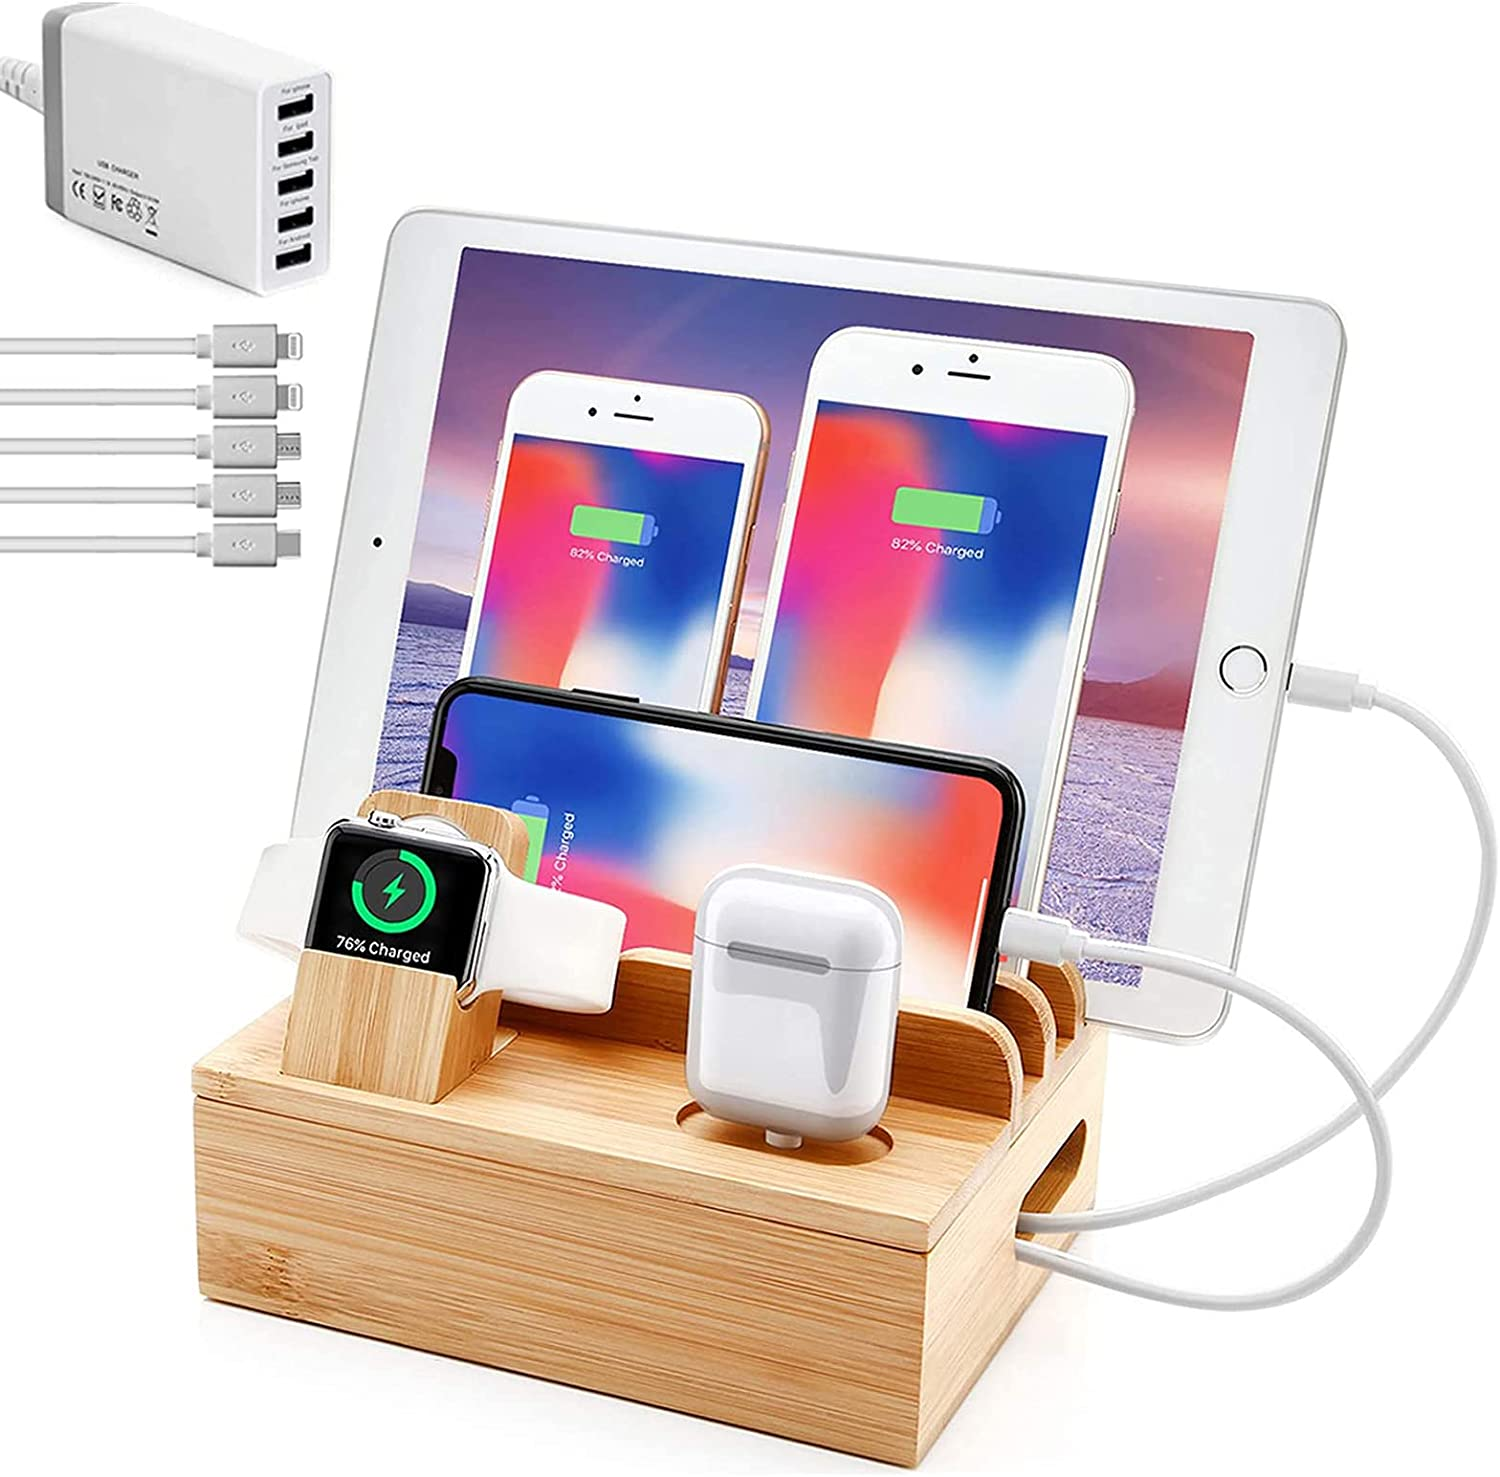 Charging Station for Multiple Devices, 6 in 1 30W USB Bamboo Charging Station Dock Charger Organizer with 5 Cables for Apple Product, iPhone, iPad, Apple Watch, Airpods, Android Phones, Samsung